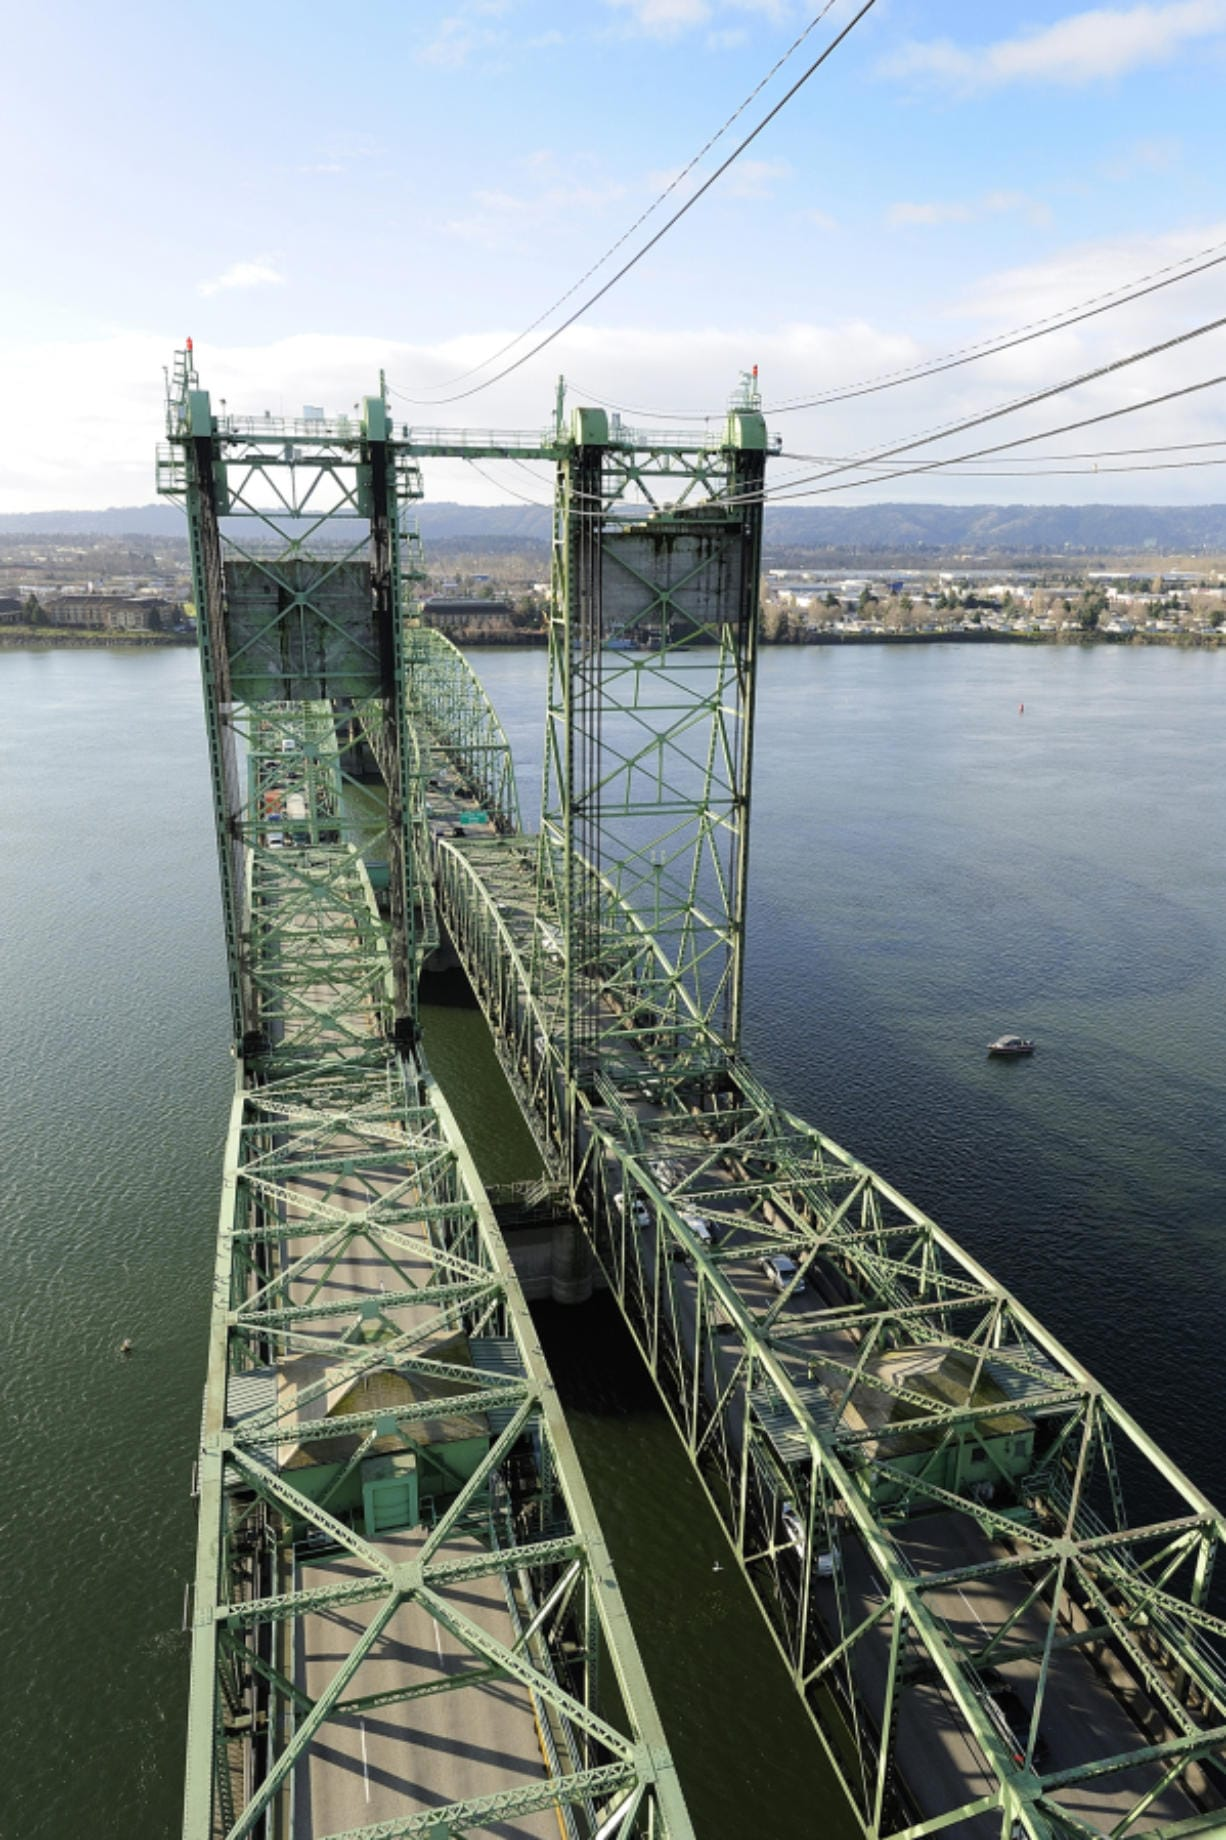 In September, Hamilton Construction Co. of Springfield, Ore., will replace several components of the Interstate 5 Bridge's lifting mechanism for the northbound span, which can be seen to the left in this photo looking south toward Oregon.